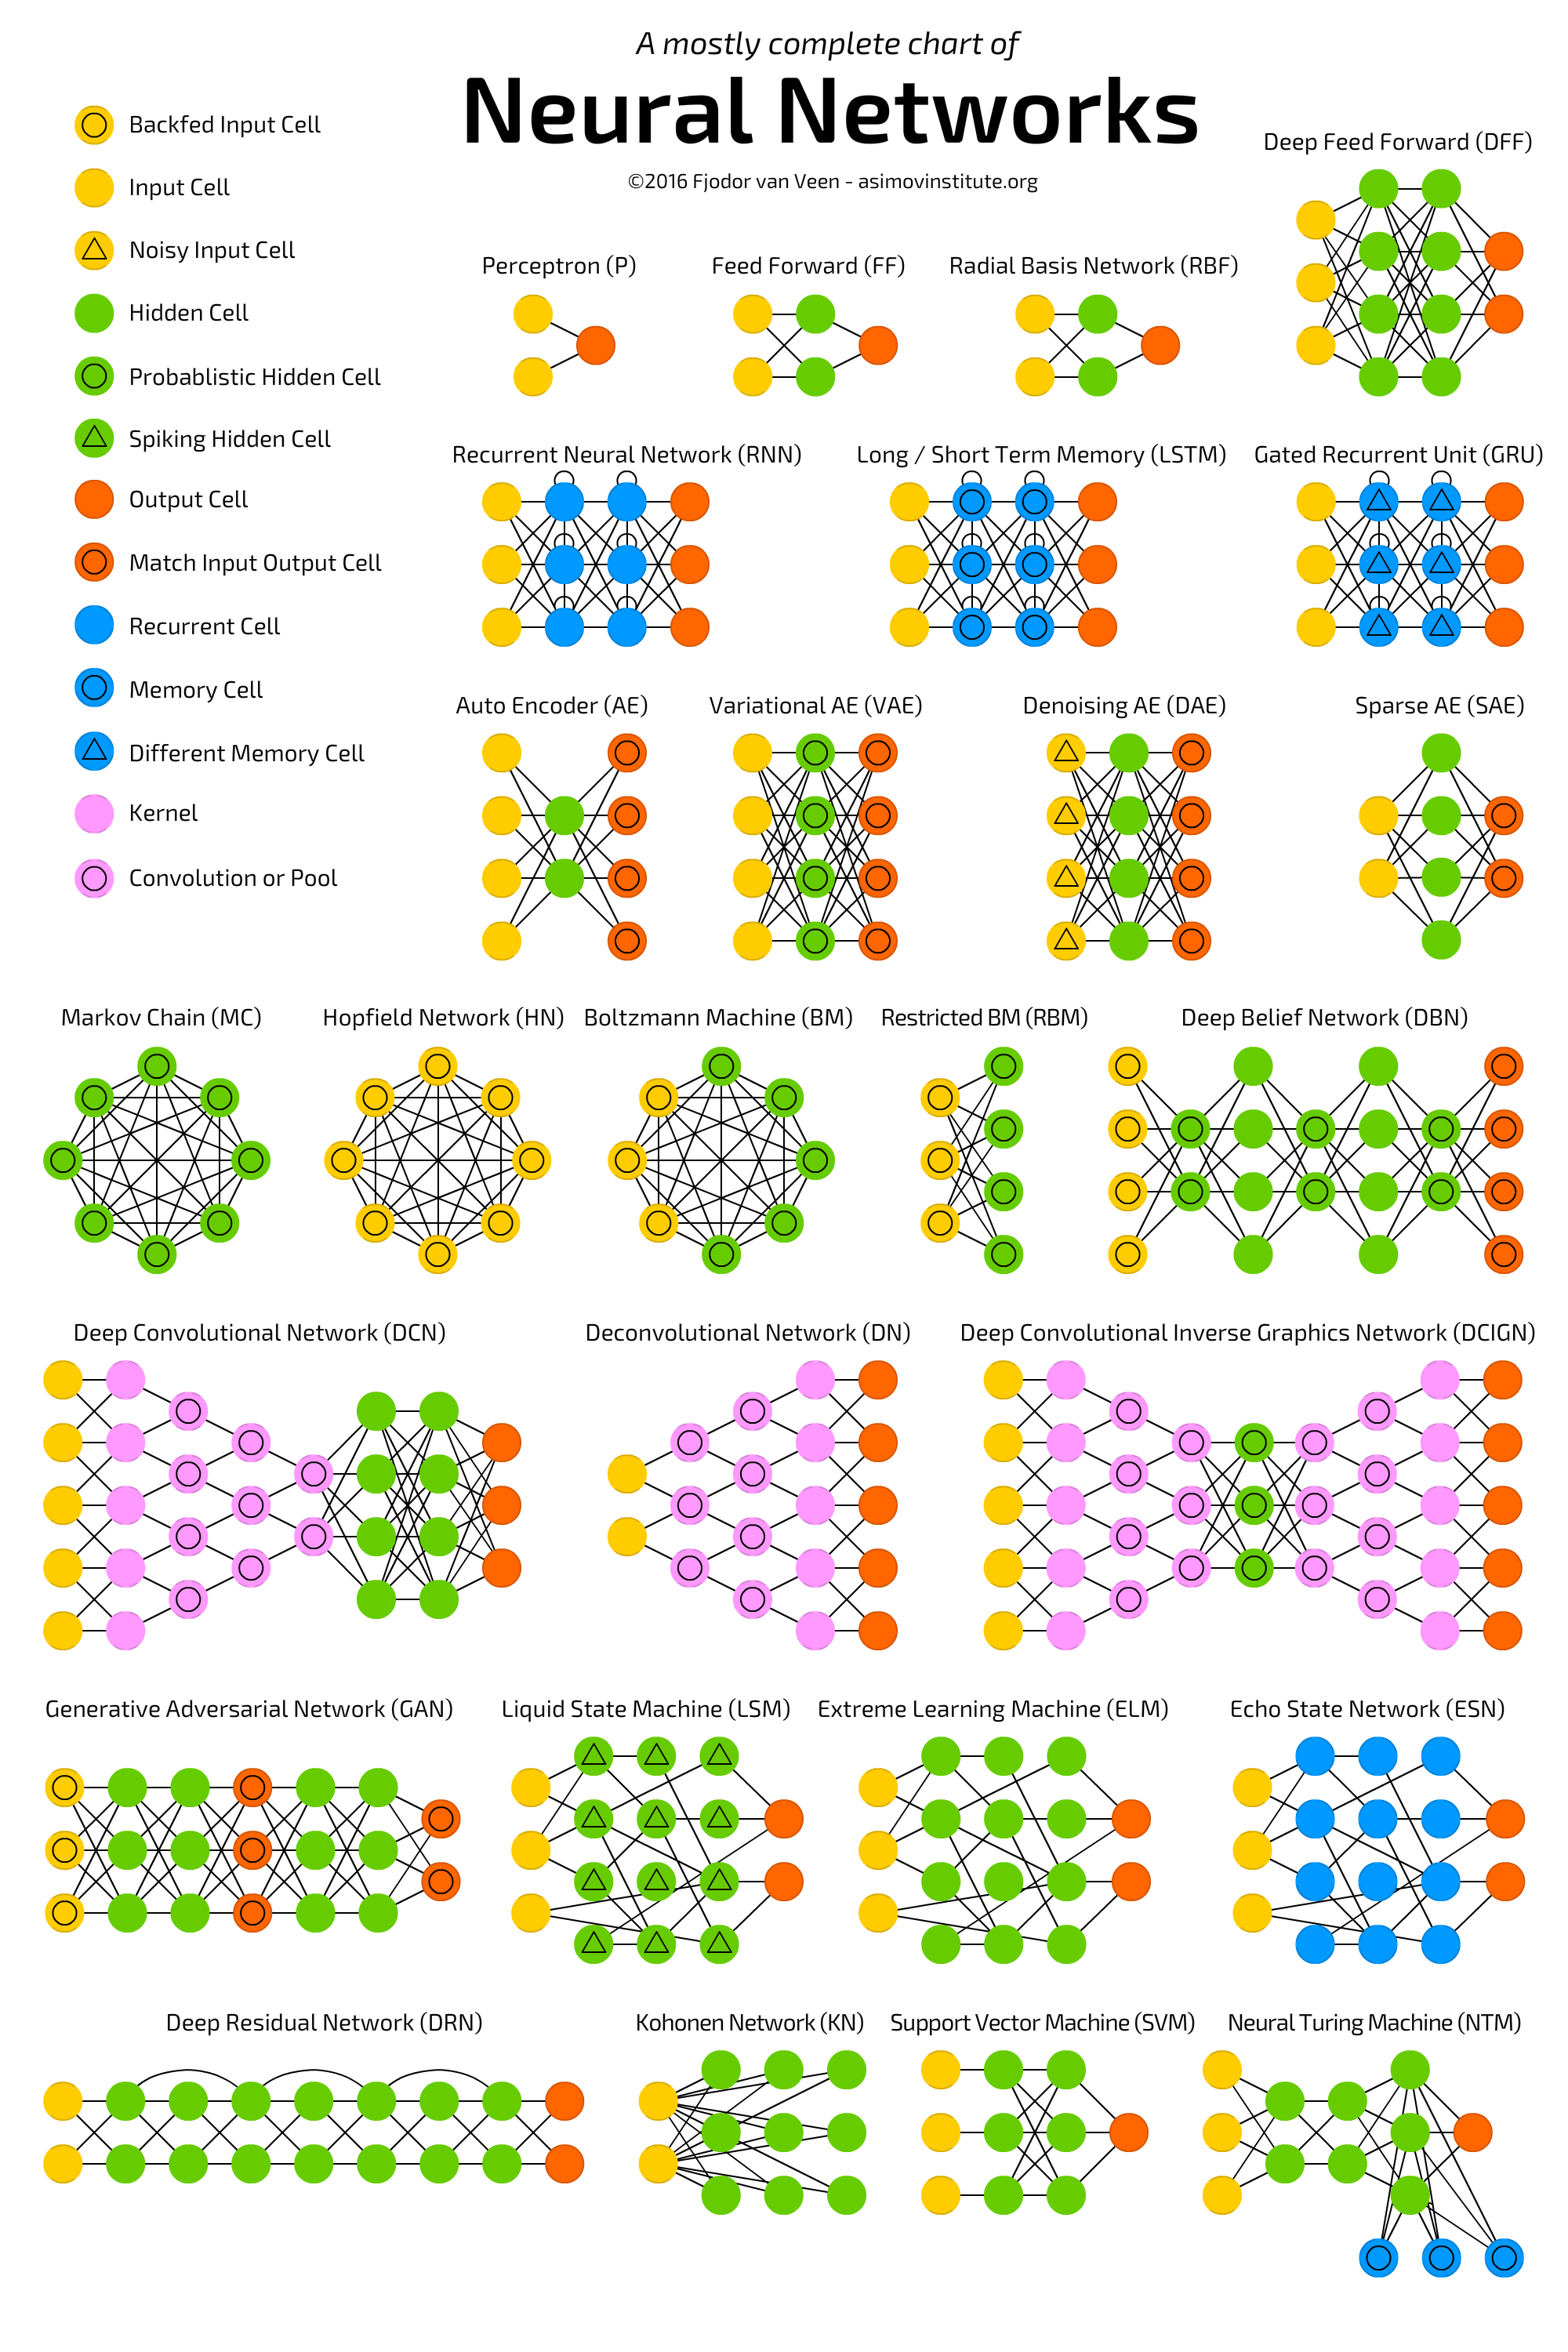 An overview of neural networks